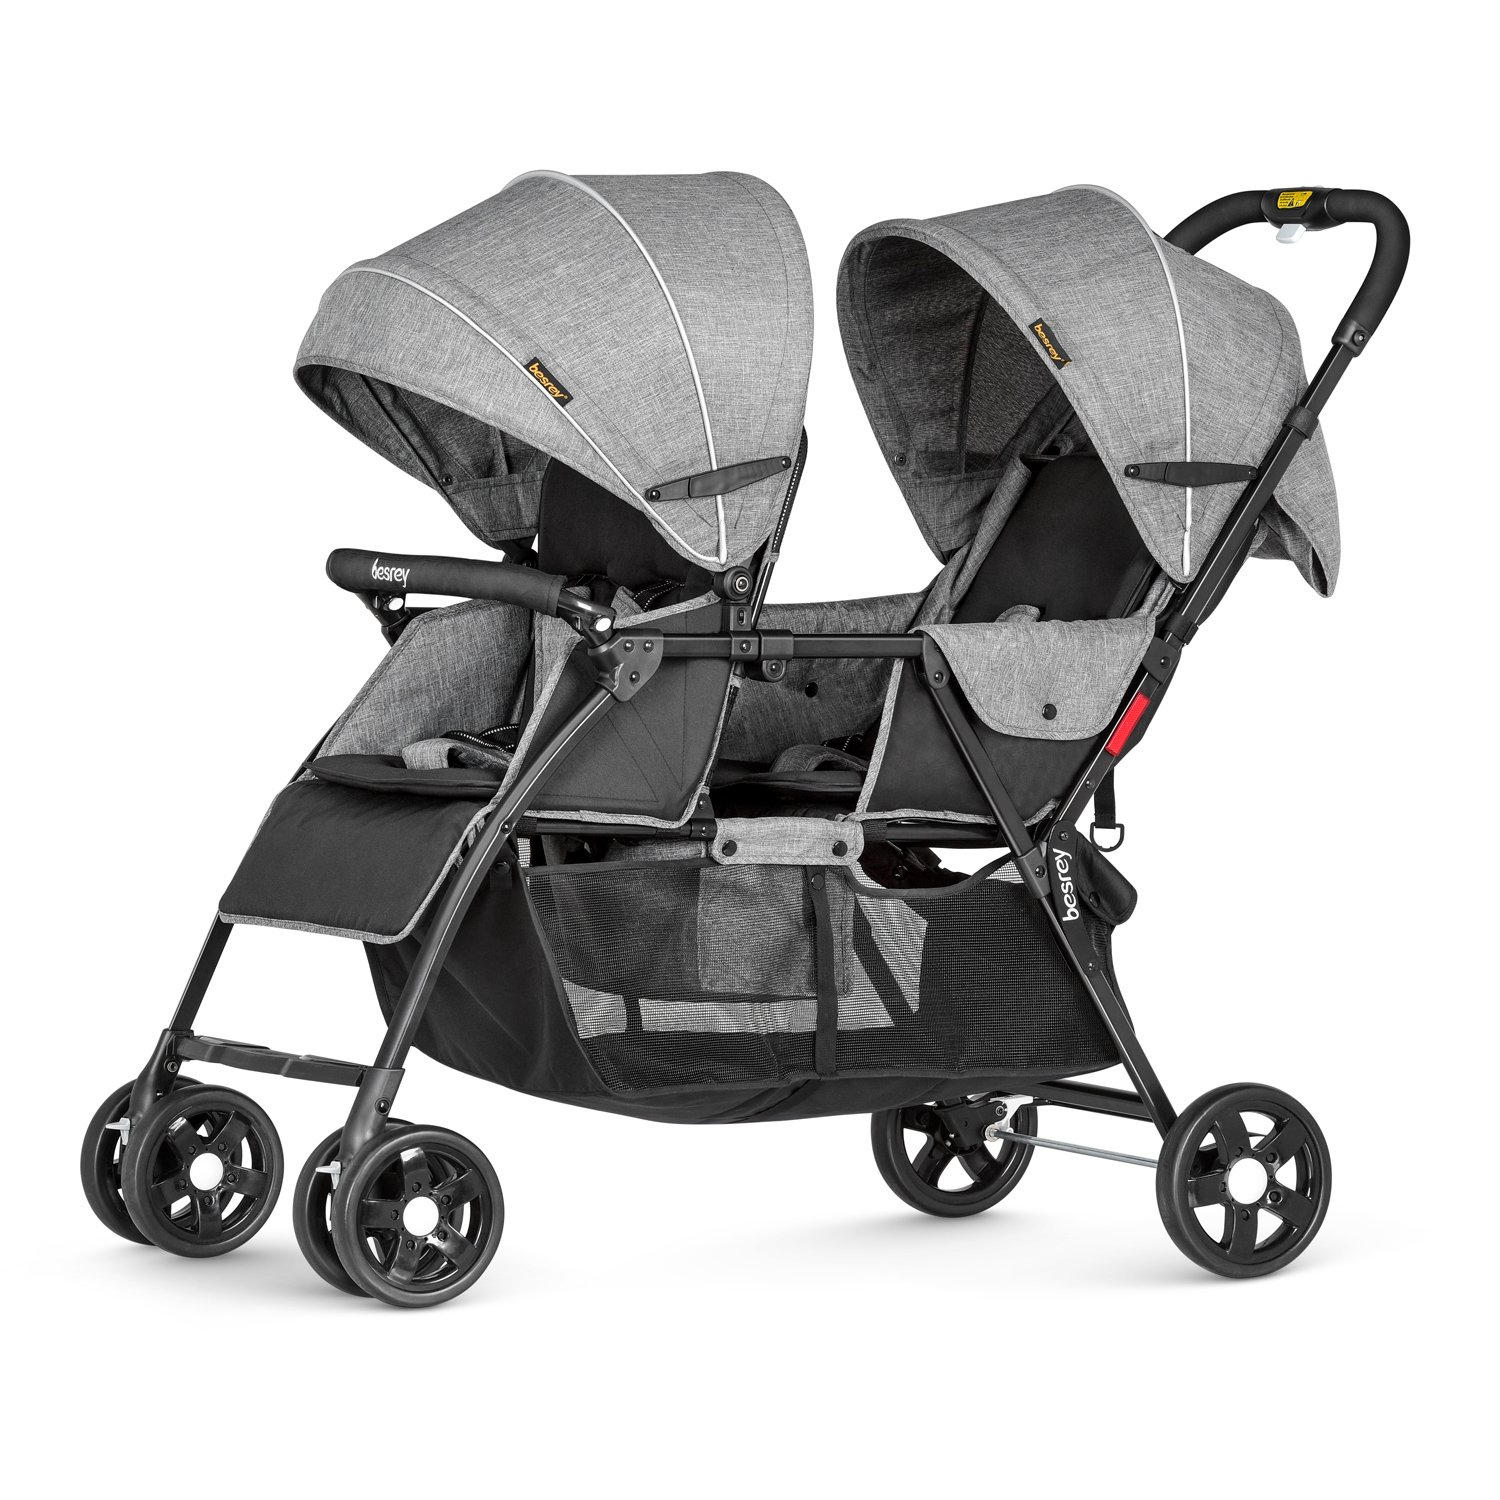 Besrey Double Stroller Baby Tandem Stroller 0-36 Months with Adjustable backrest/foot plate and 5 Point Harness